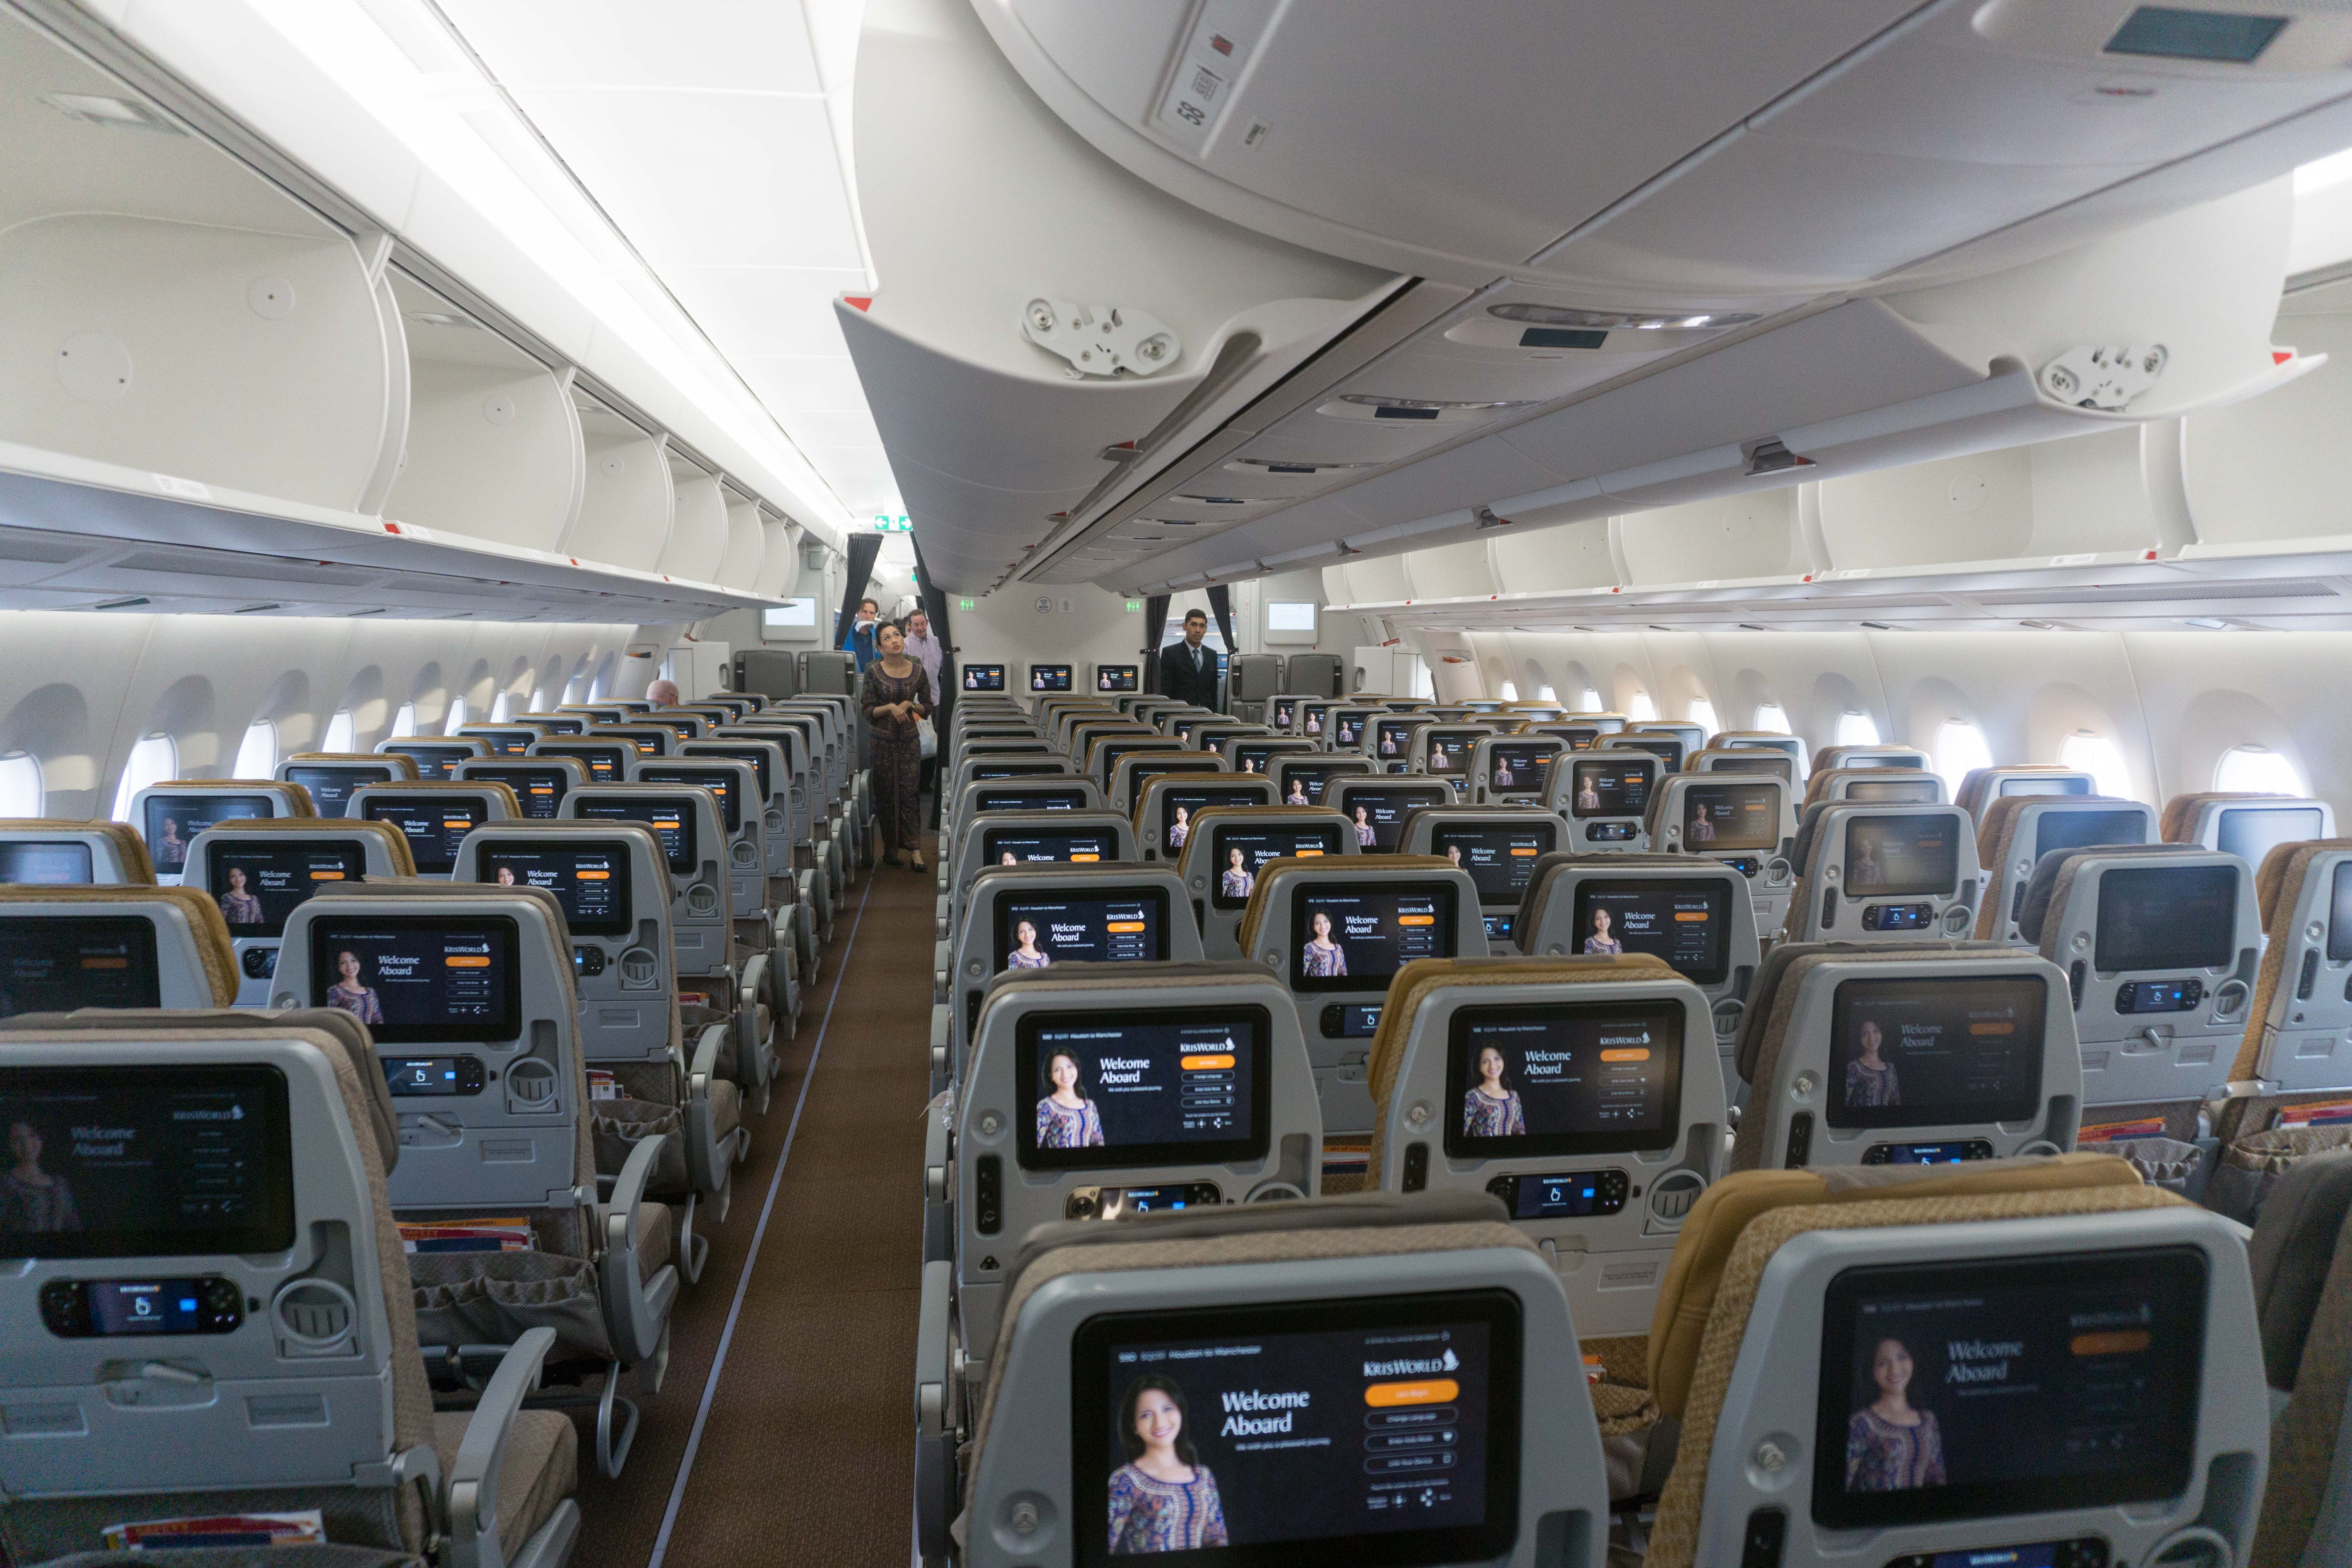 Singapore Airlines (A350-900) Economy, Houston to Manchester